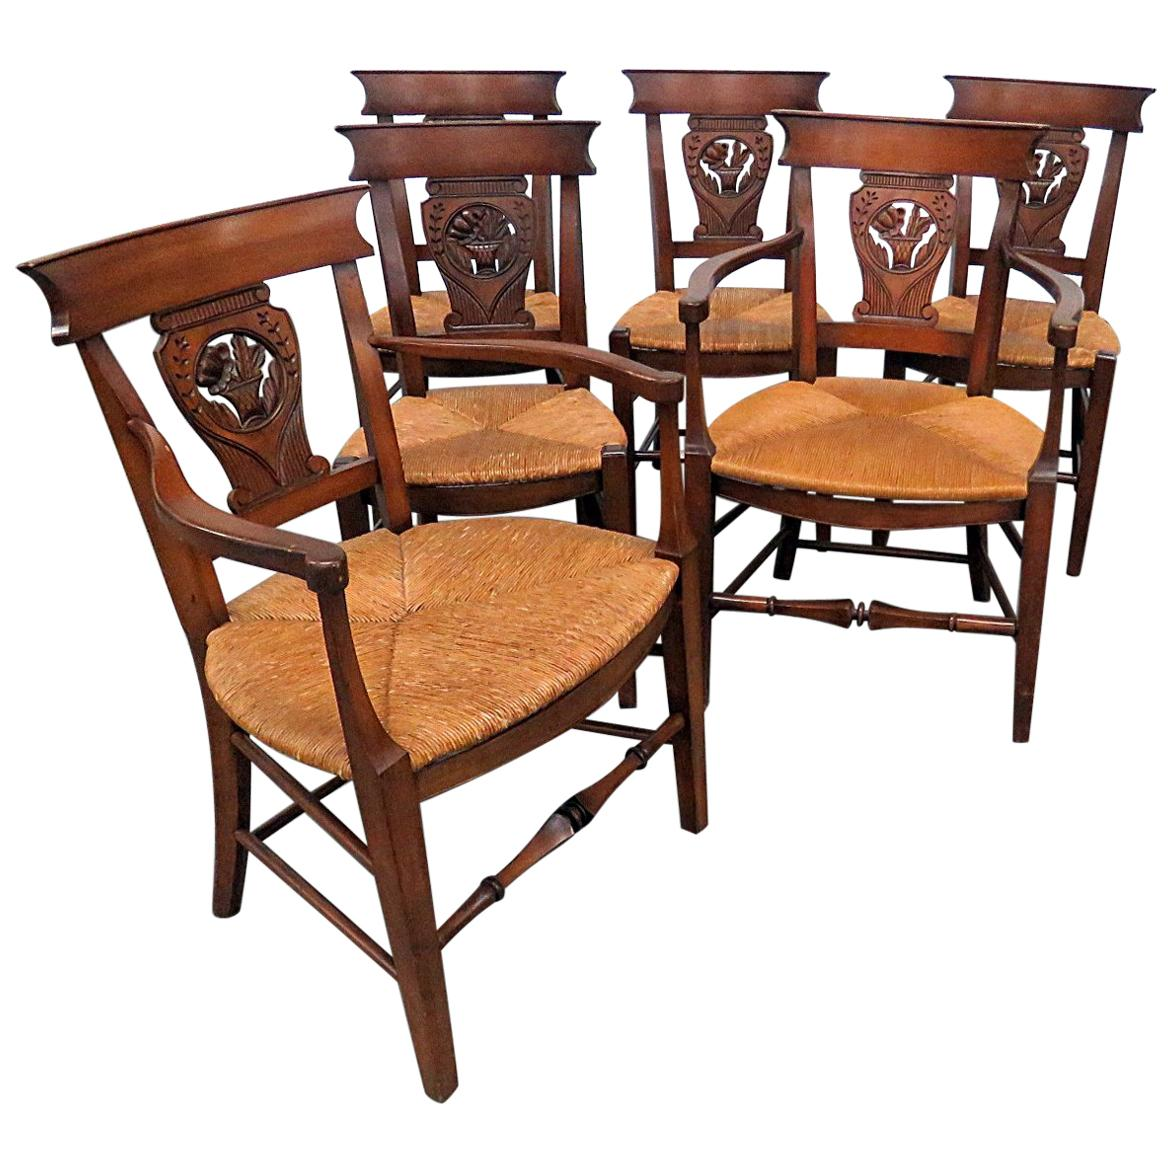 Dining Chair Set Of 6 Set Of 6 French Provincial Style Dining Chairs